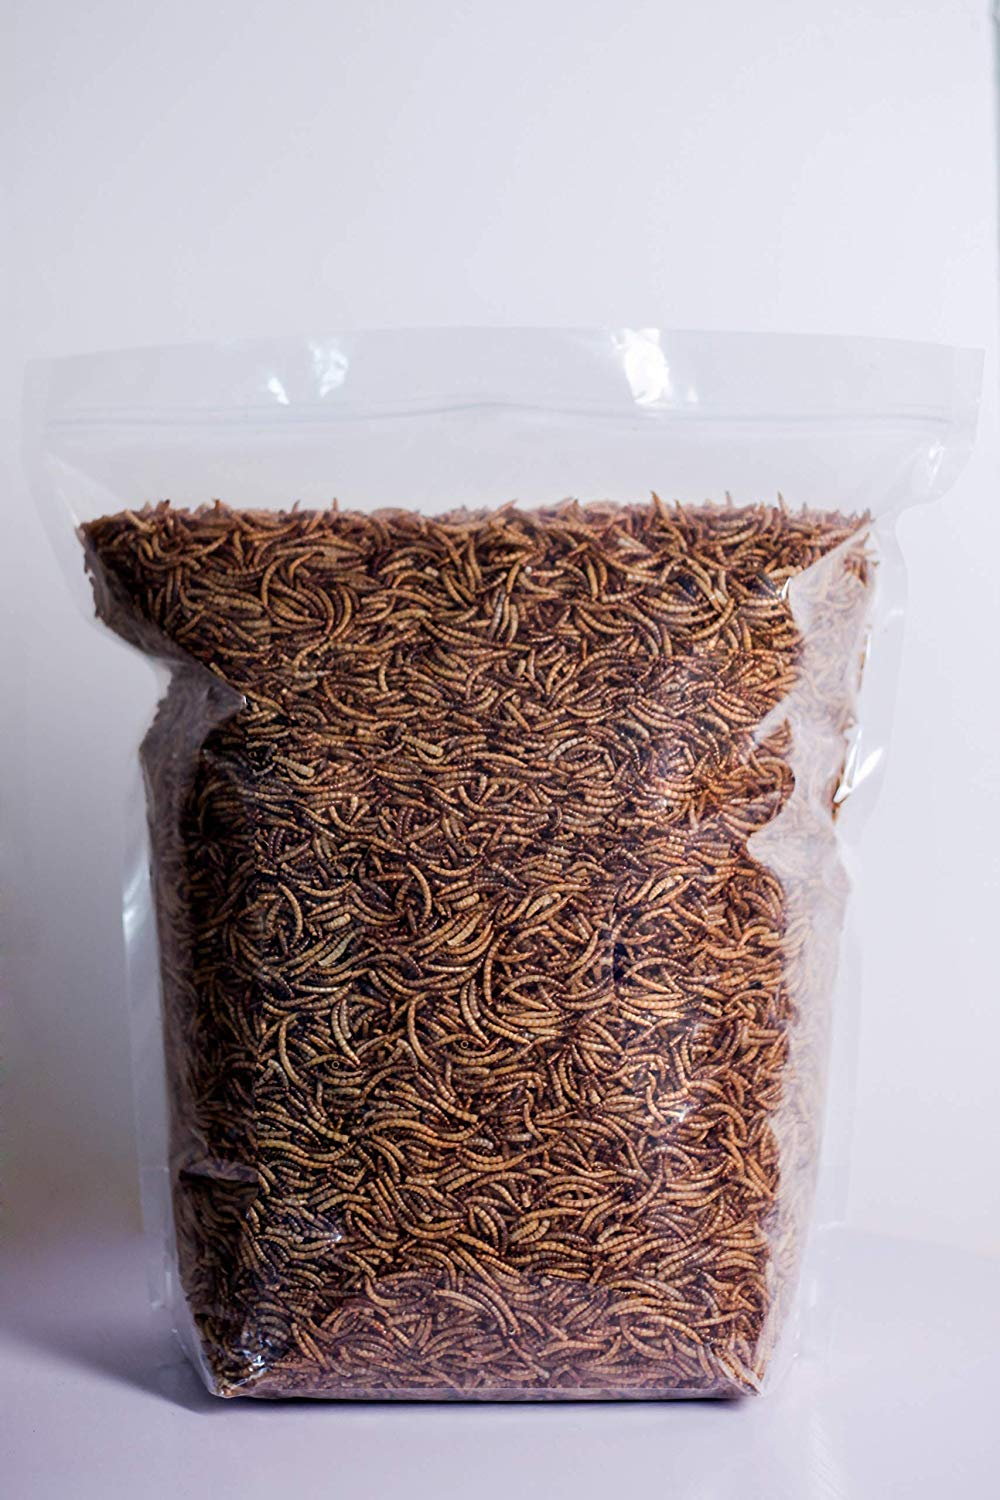 Kimoe 5LB 100% Natural Non-GMO dried mealworms for Birds, chicken,ducks by kimoe